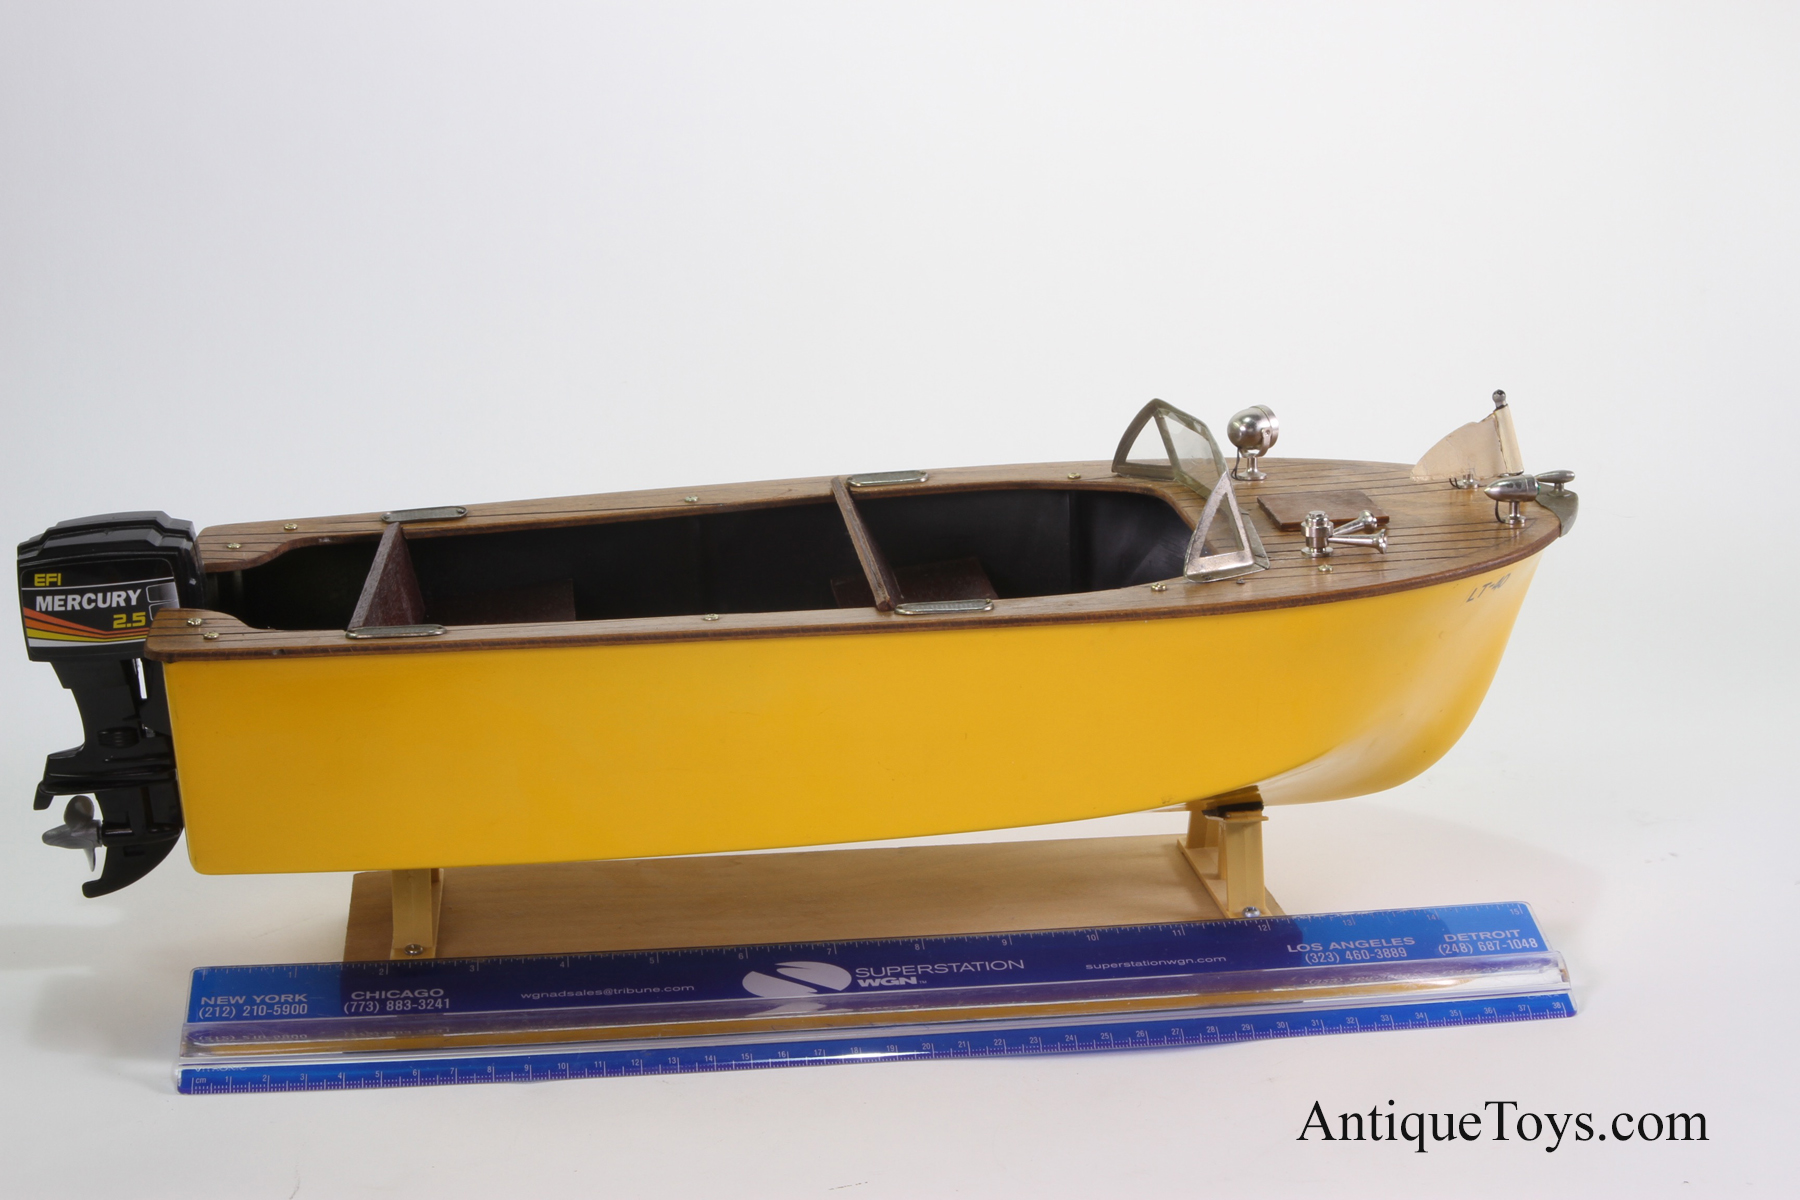 Toy Electric Powered Boats Great Installation Of Wiring Diagram For Battery Operated Toys Fleet Line Op 50 S Boat Usa Sold Antique Sale Rh Antiquetoys Com Small Lakes